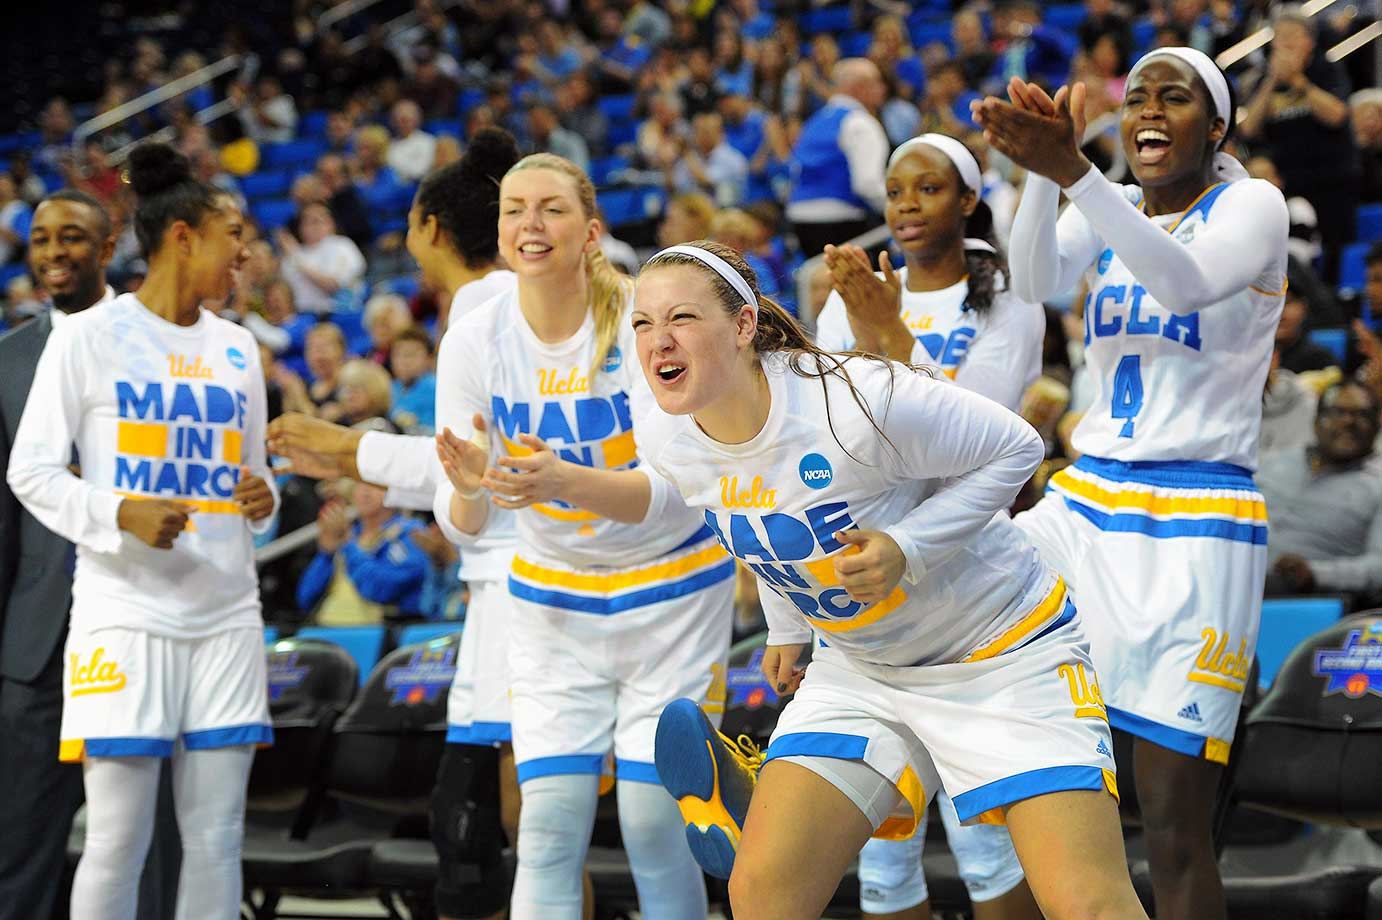 The UCLA bench cheers as their teammates build a double-digit lead against South Florida.